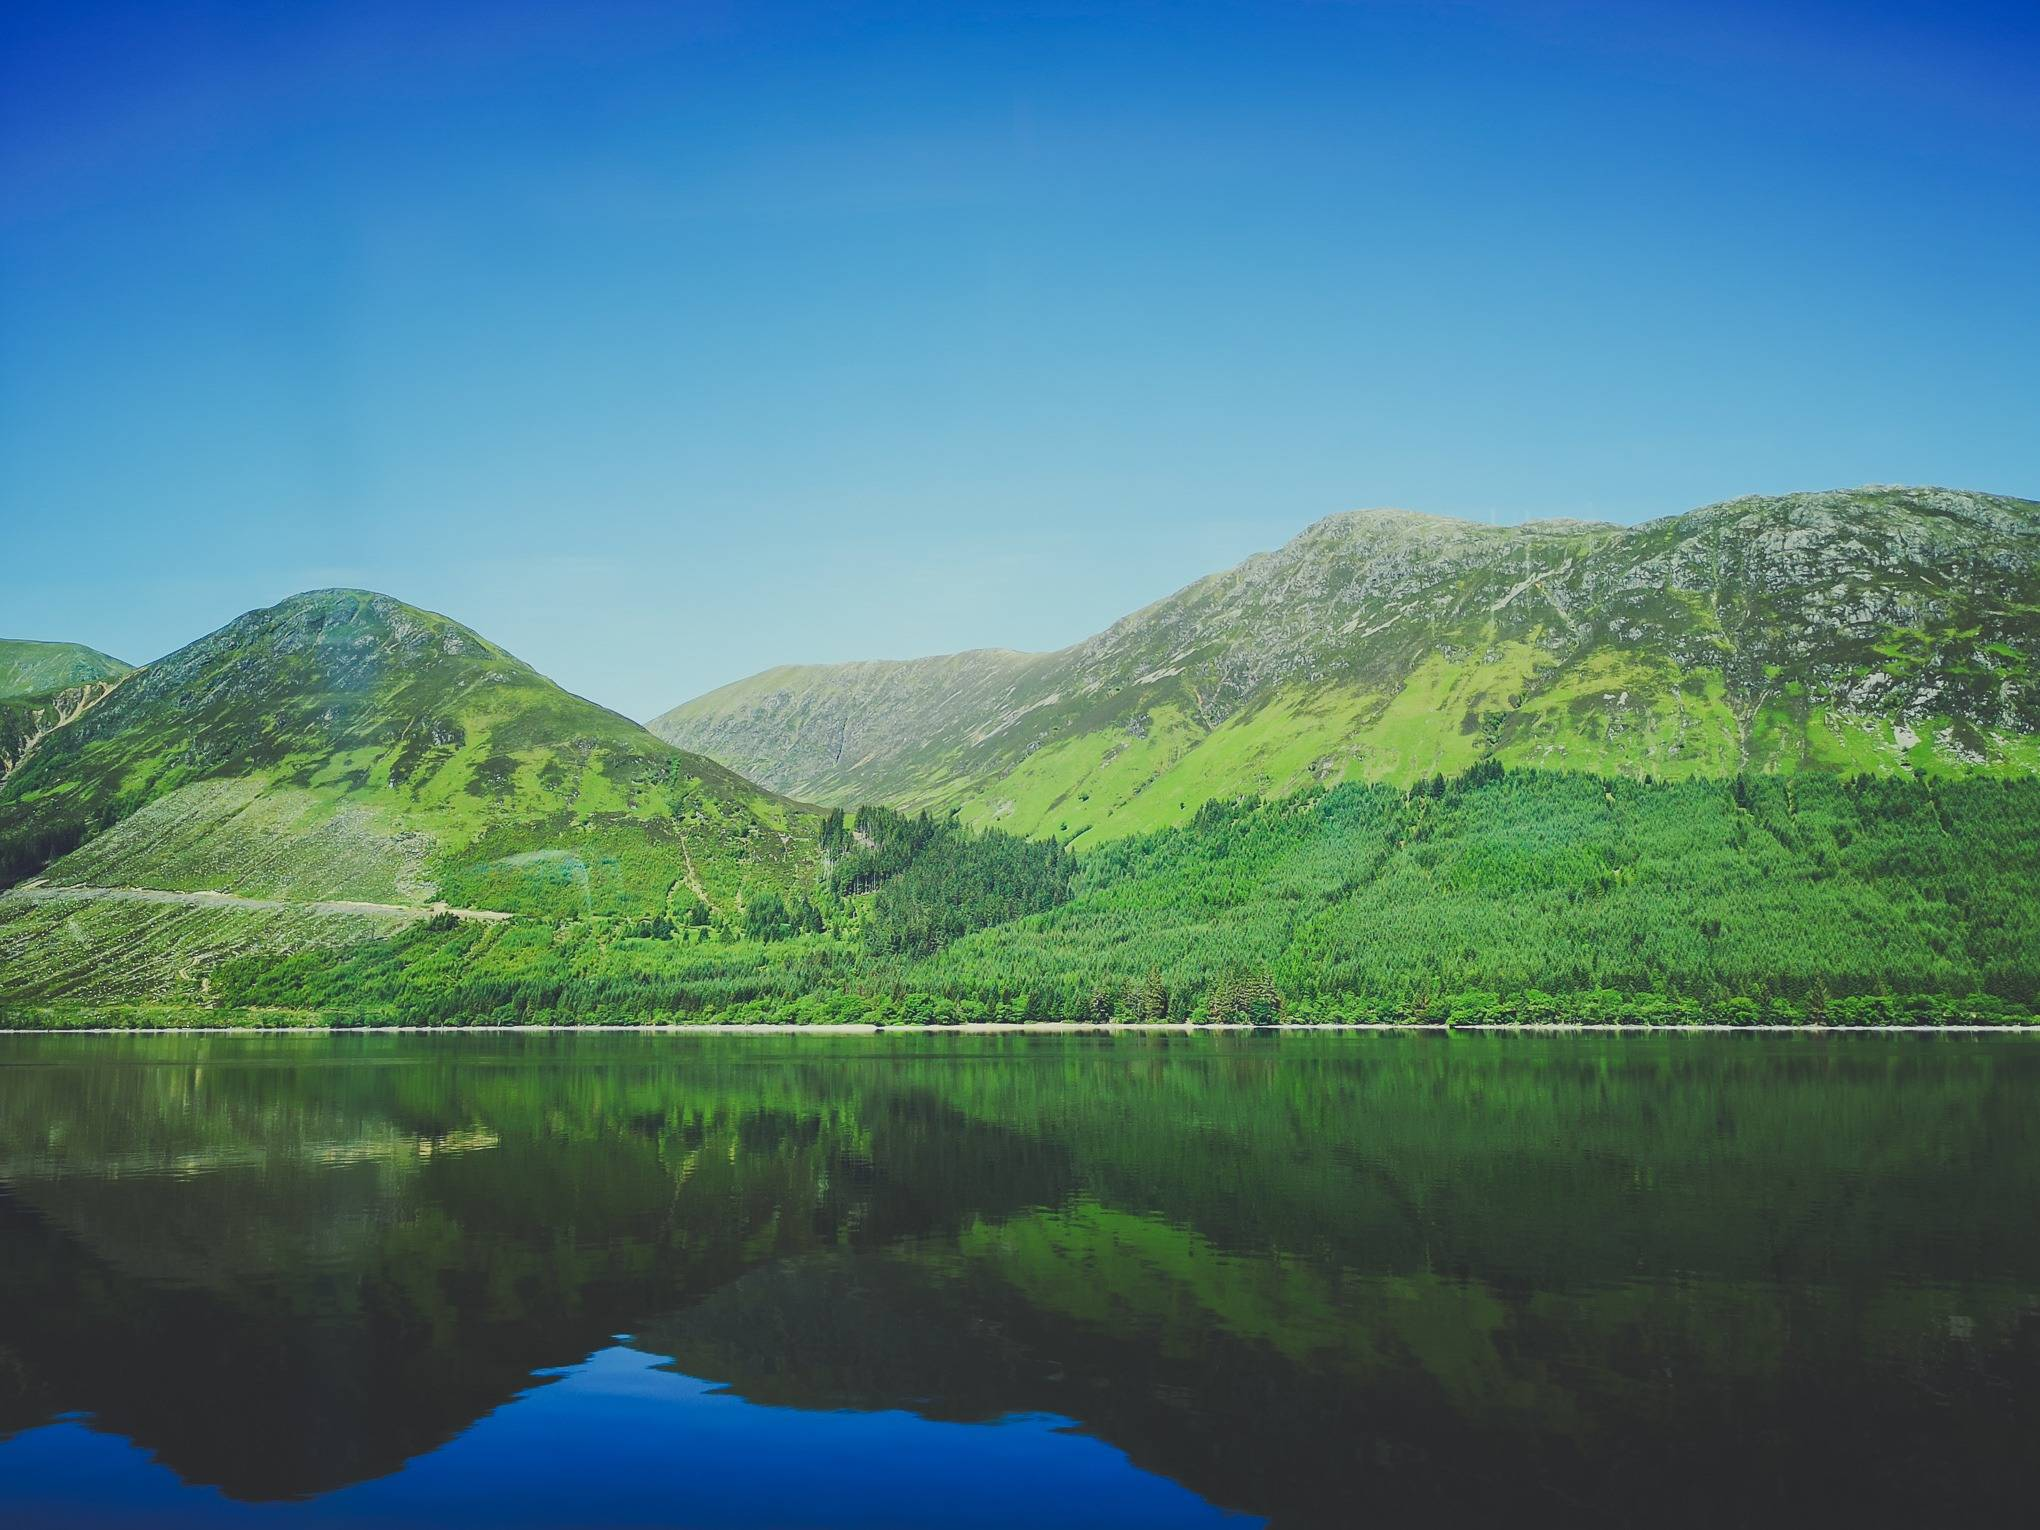 Can you tell if this is Loch Ness or any other lake in Highland of Scotland? I bet nobody can tell the difference. Photo by Alis Monte [CC BY-SA 4.0], via Connecting the Dots